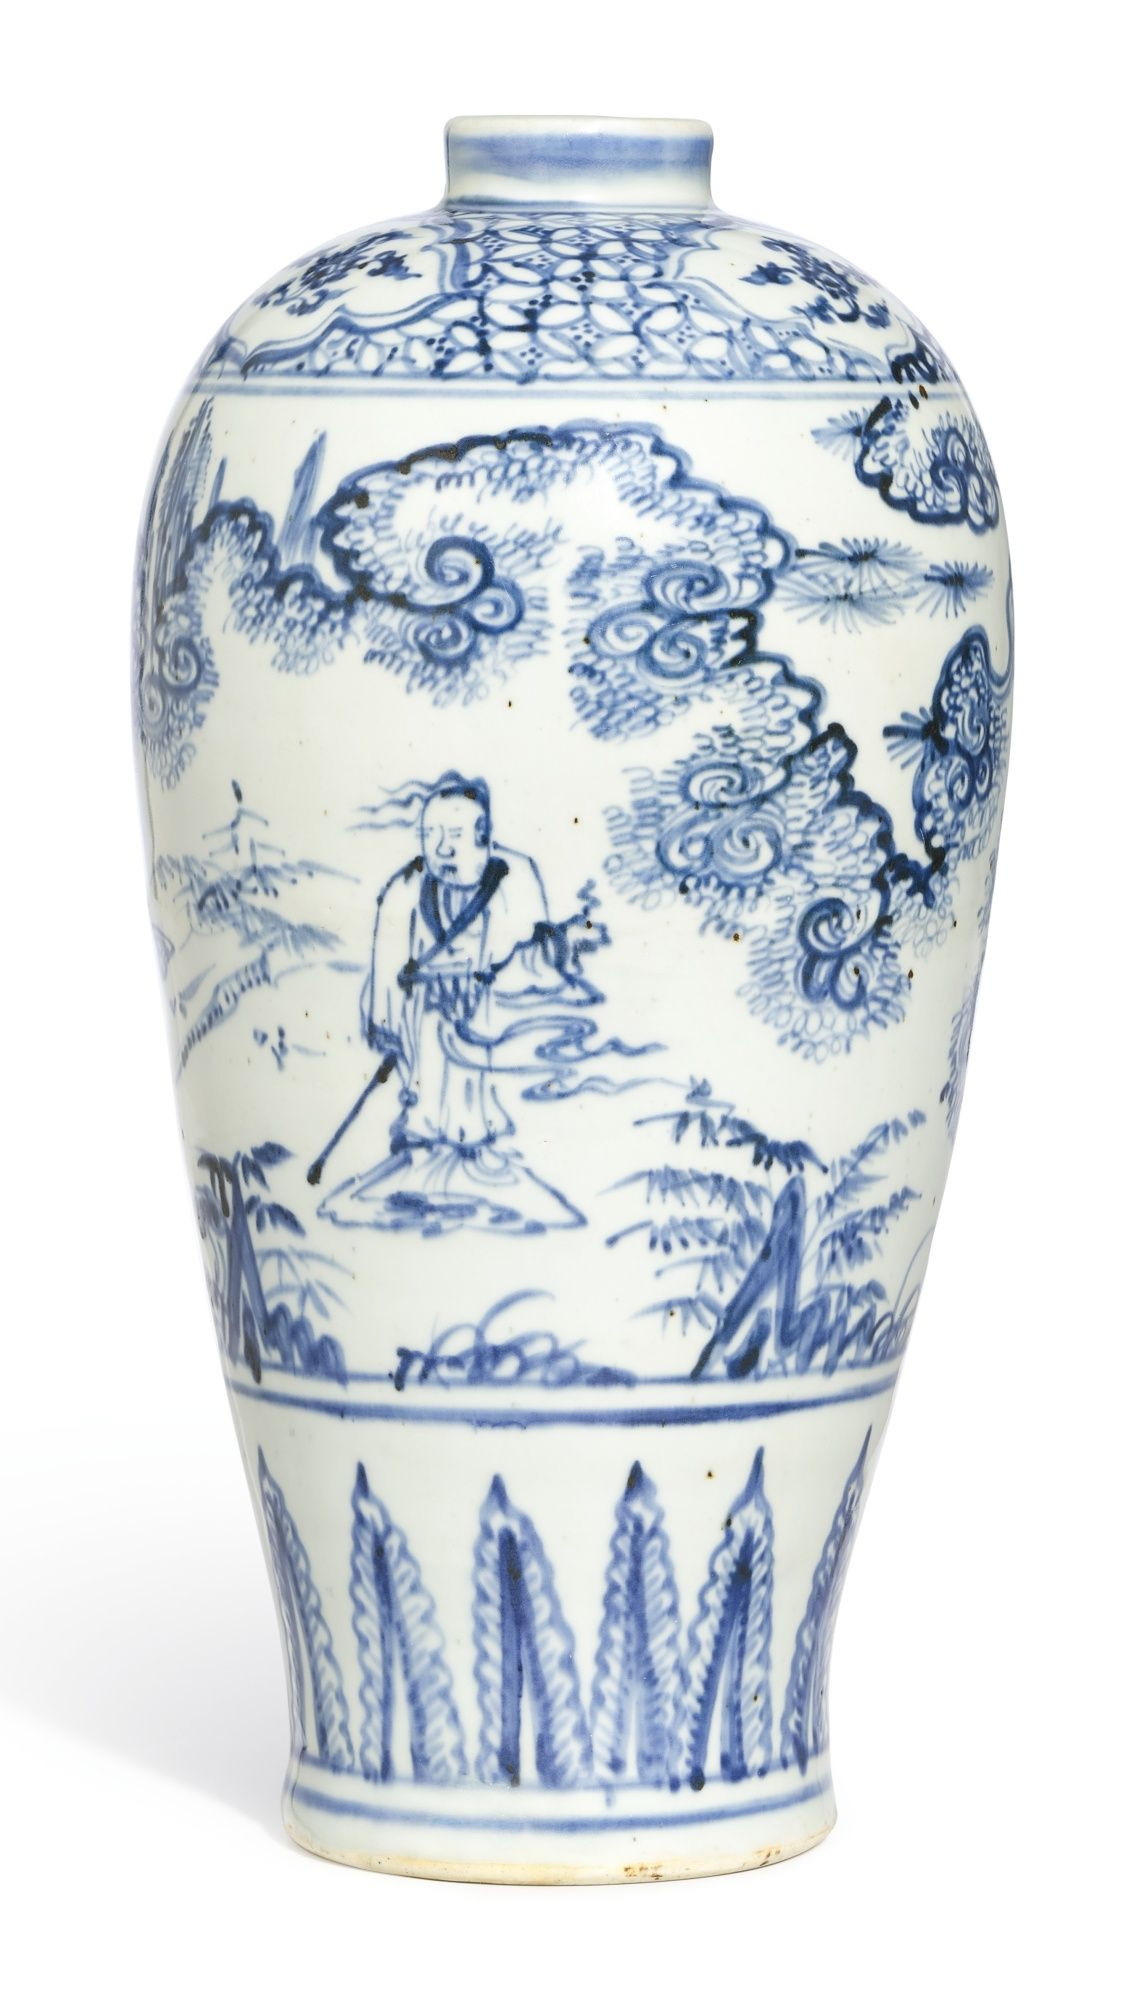 17th century chinese vase of a blue and white figure meipingming dynasty 15th century regarding a blue and white figure meipingming dynasty 15th century lot sothebys